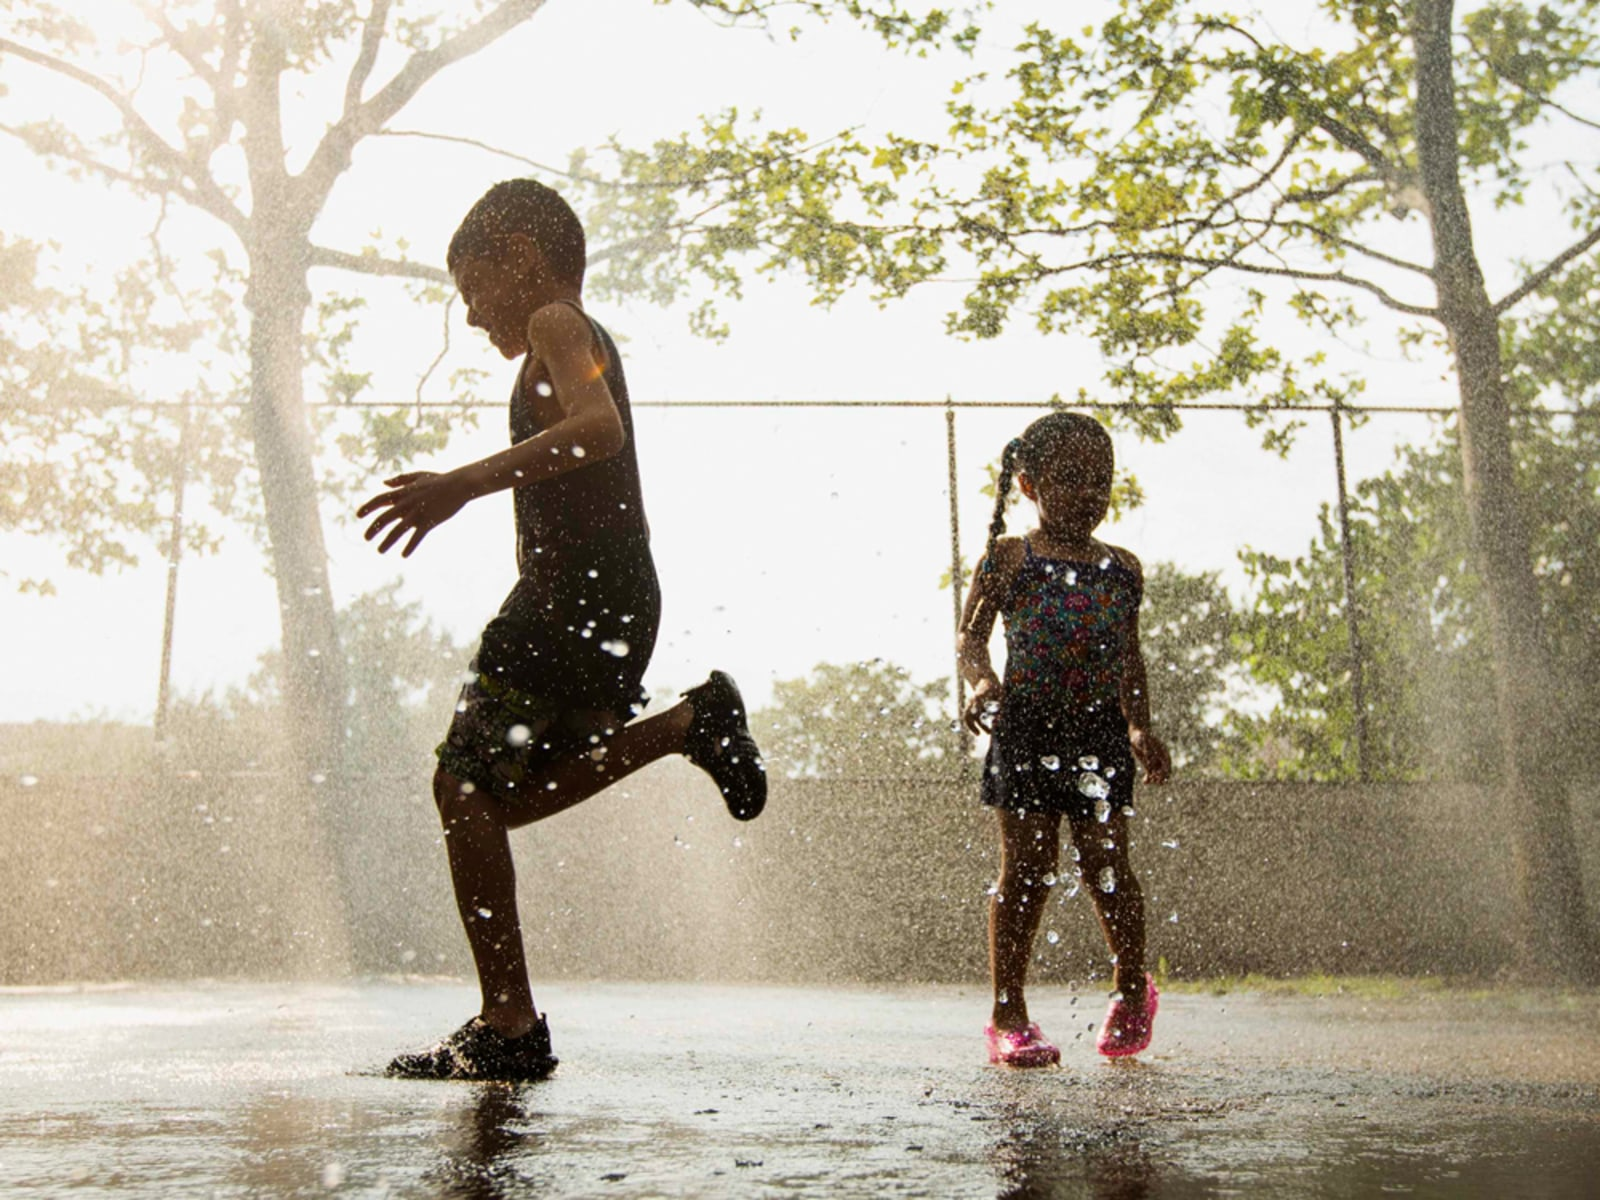 Image: Children run through a sprinkler system installed inside a playground to cool off during a hot summer day in New York